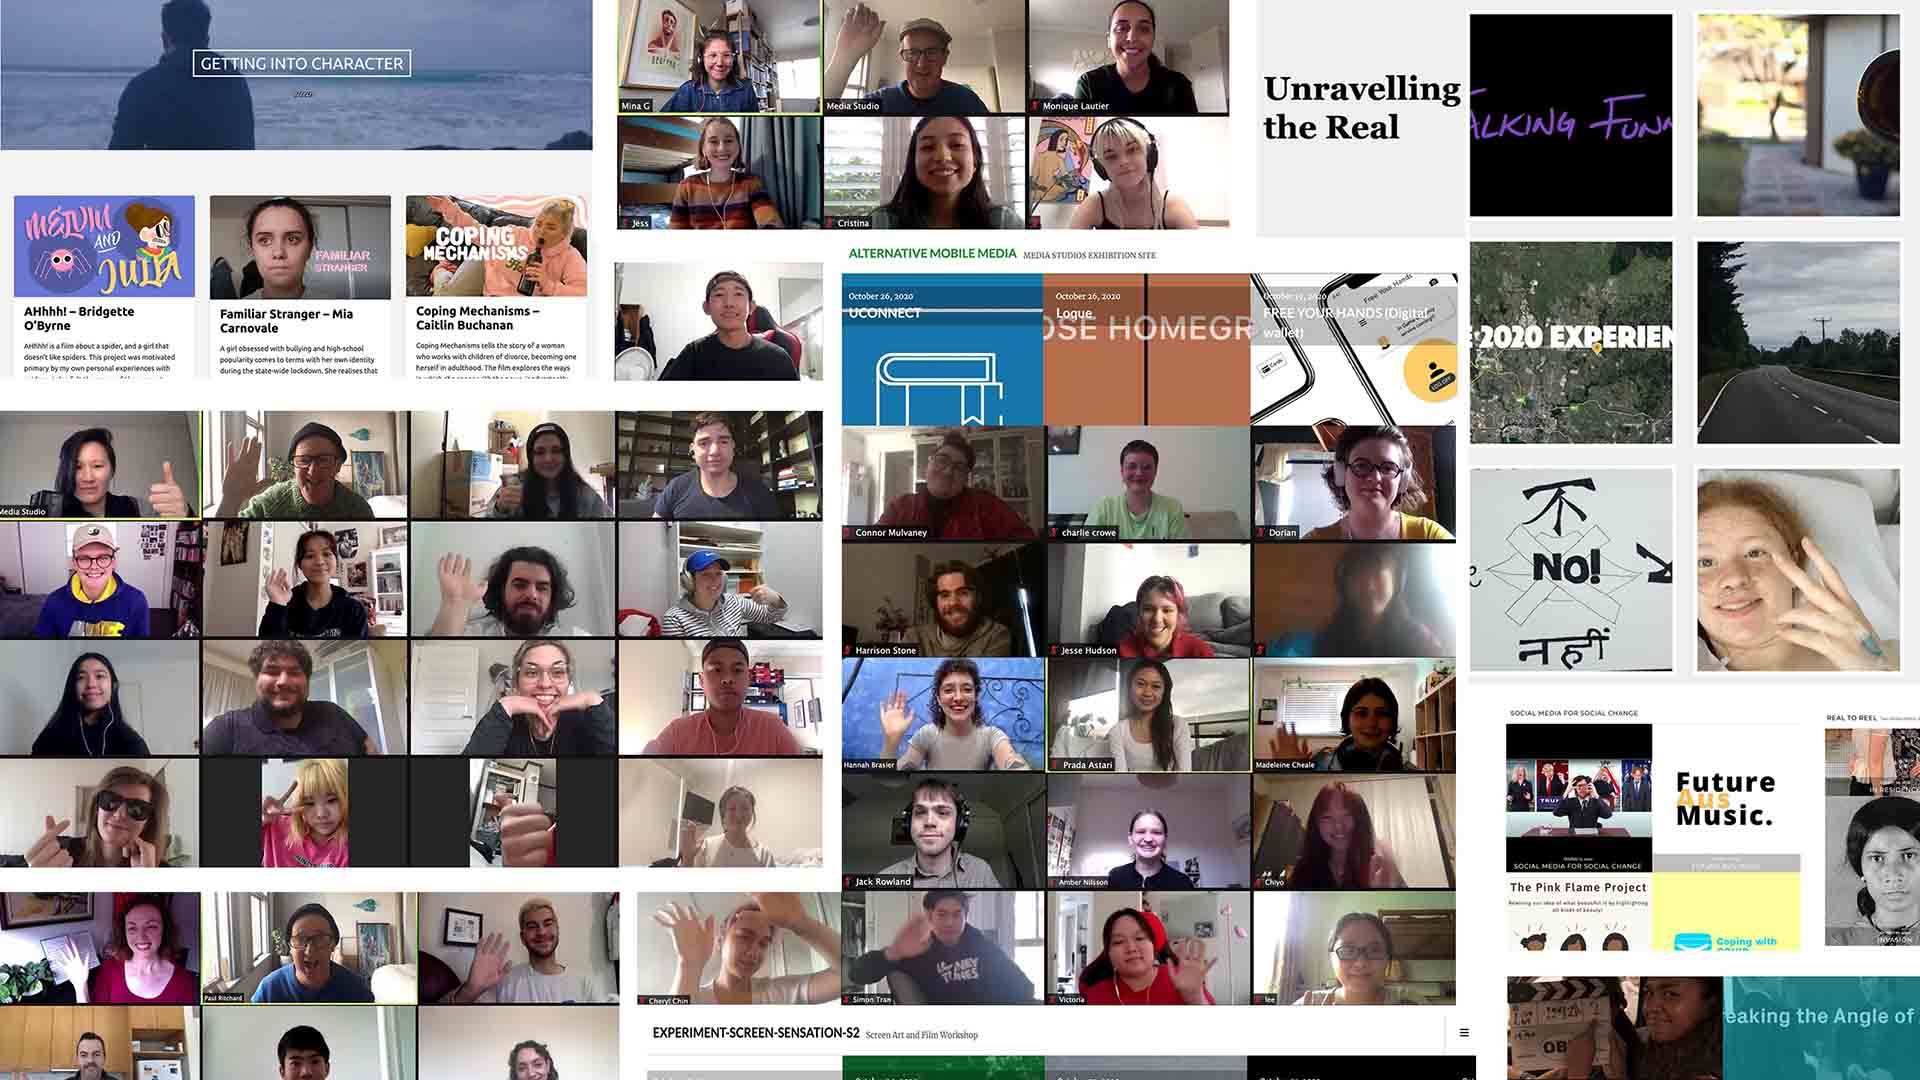 Collage of people's webcam screenshots and media project images